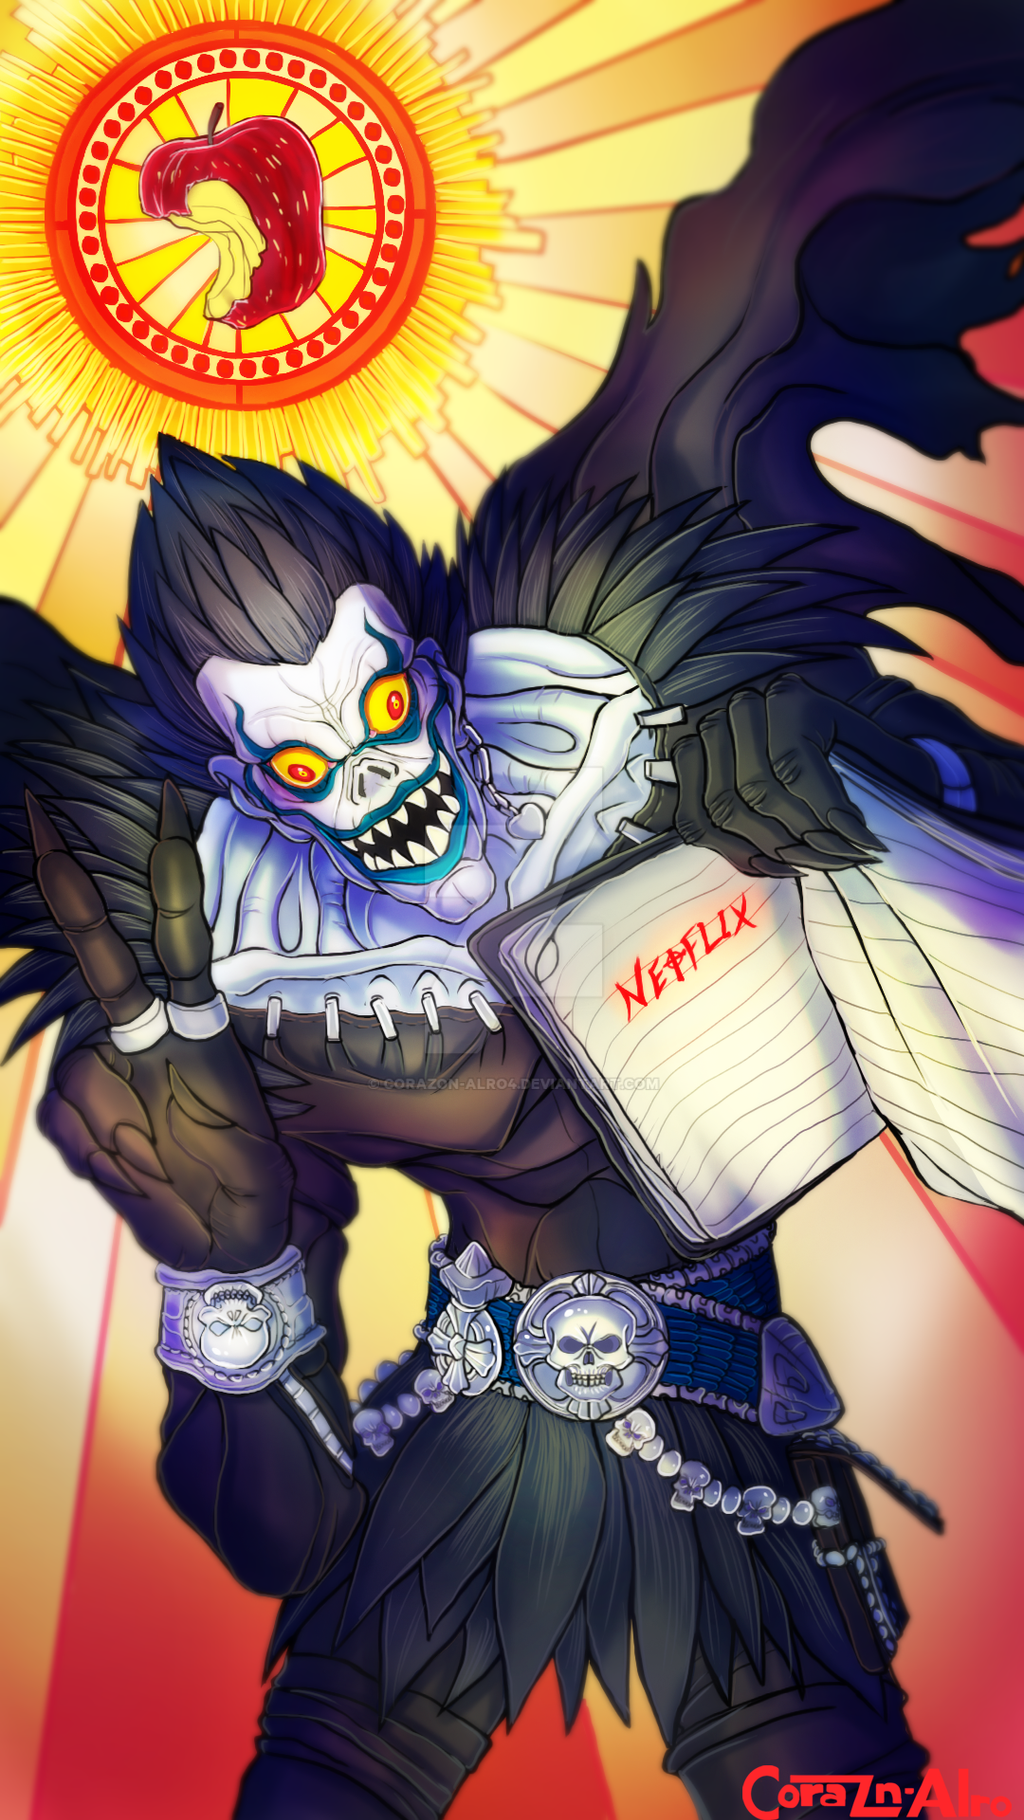 Death Note Ryuk by Corazon-Alro4 on DeviantArt